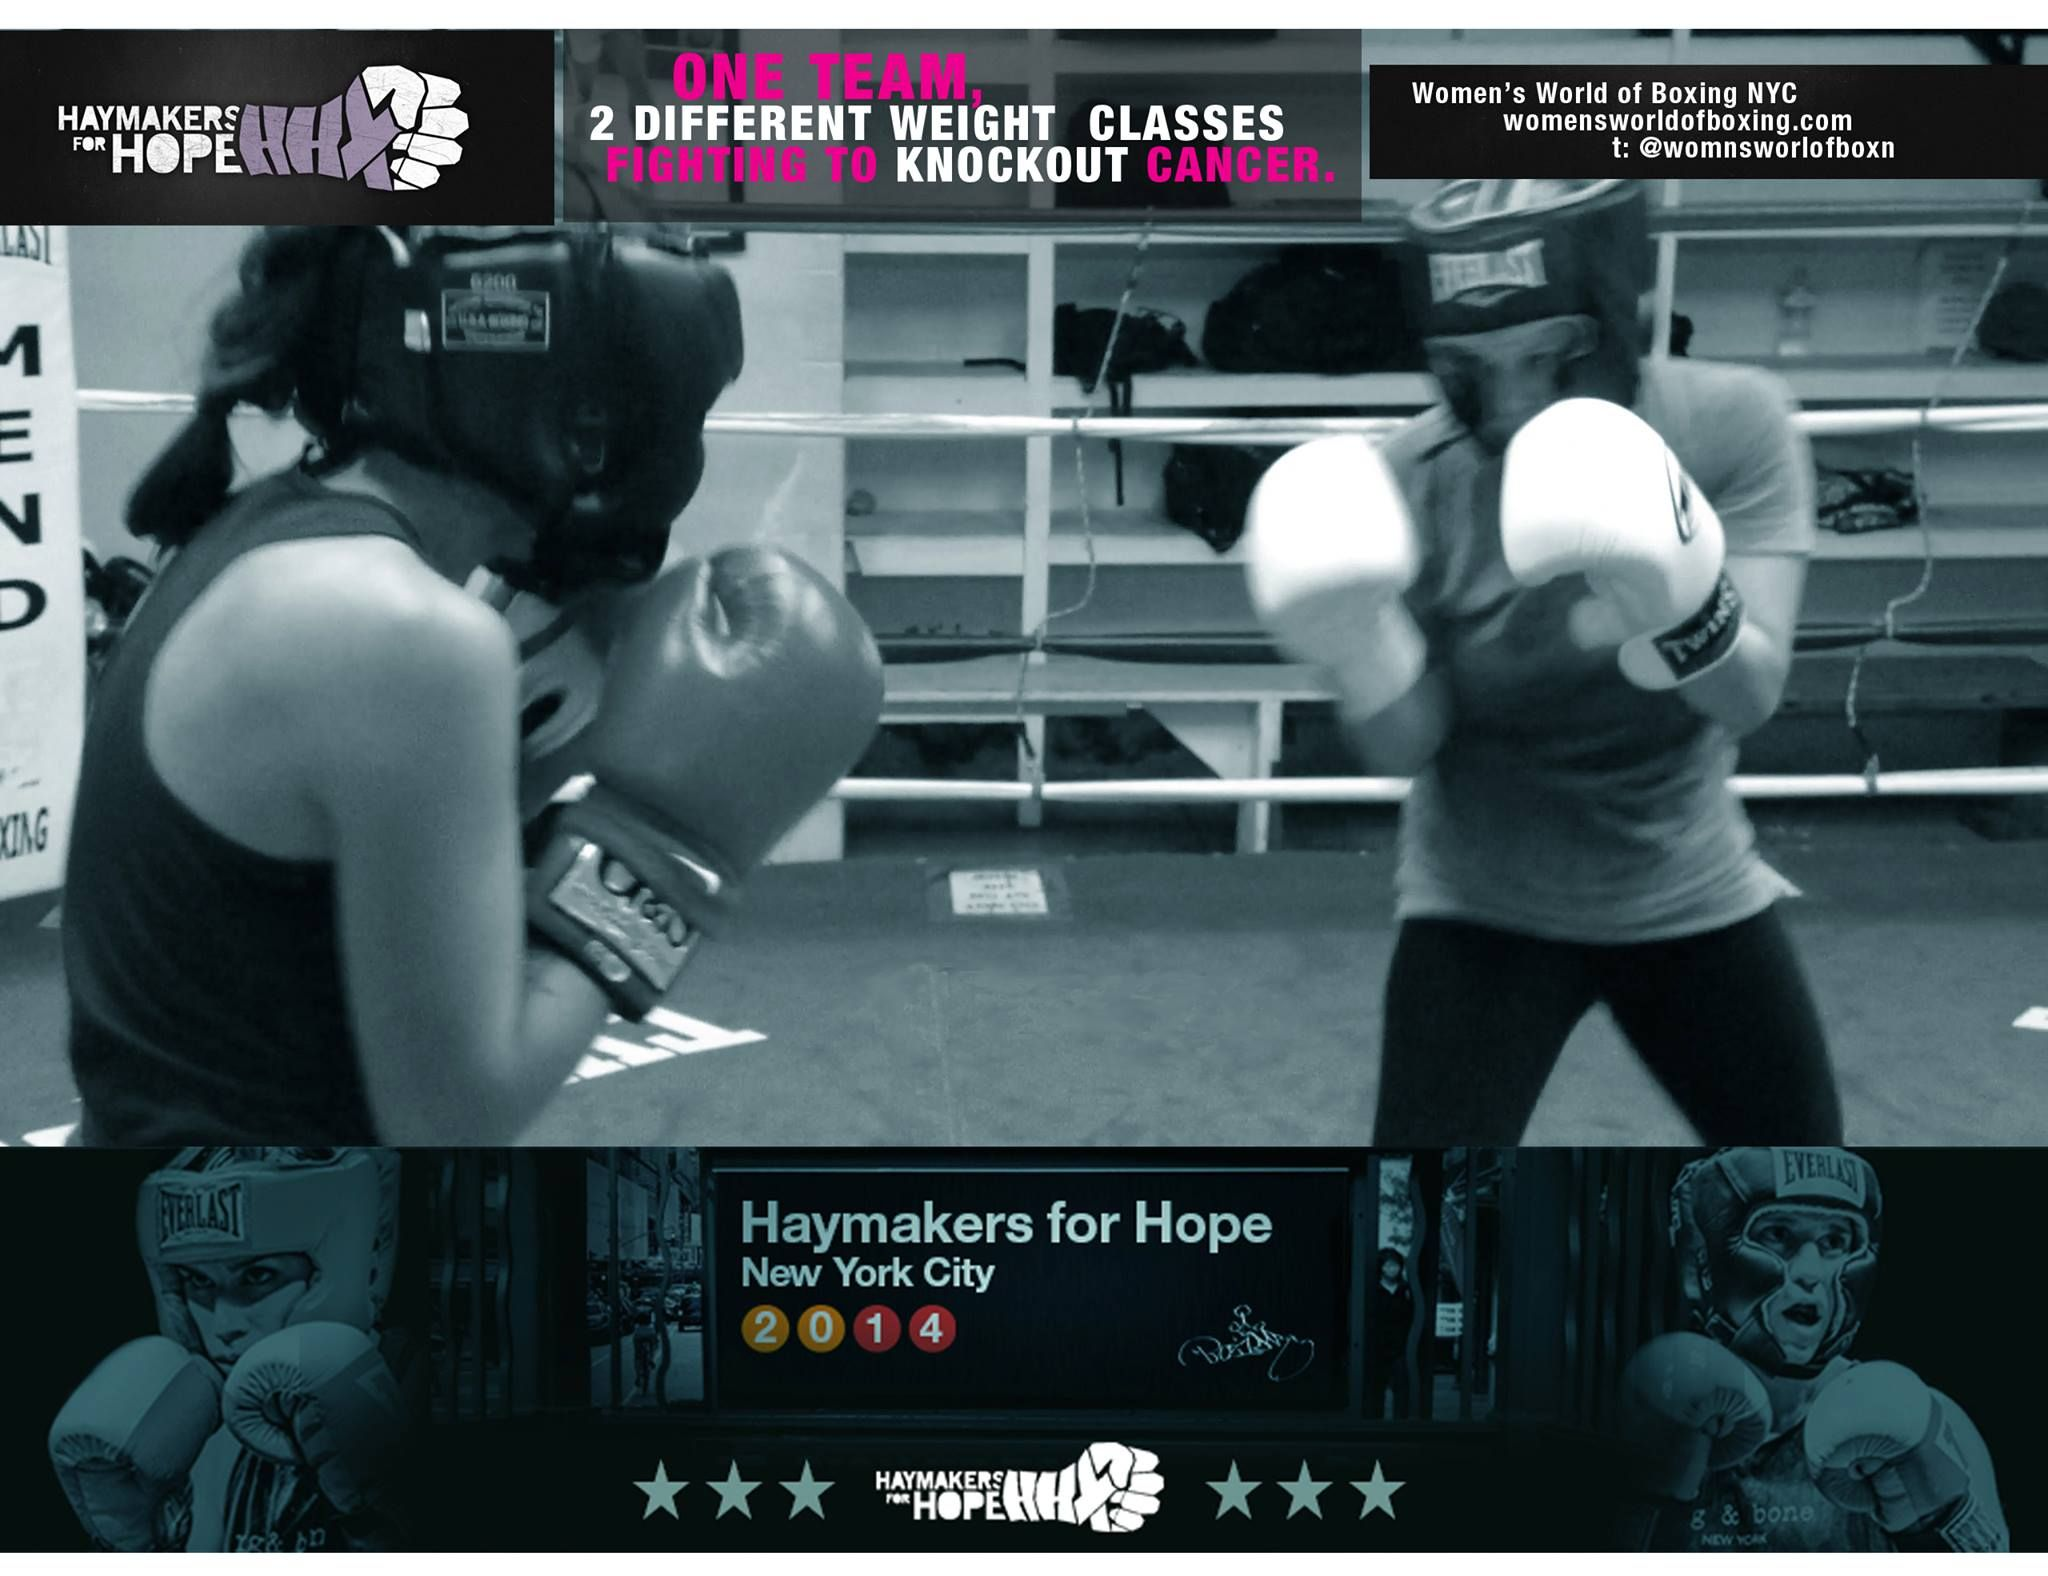 "Haymakers for Hope NYC 2014!  This year Women's World Of Boxing is entering the competing ring for #HaymakersForHope #NYC 2014! Fighting in 2 different weight classes are:  Victoria ""SPARKY"" Chalk: https://www.crowdrise.com/victoriachalkh4hnyc2014/fundraiser/haymakersforhope   Caroline ""TEXAS"" Lents: https://www.crowdrise.com/CarolineLentsh4hnyc2014/fundraiser/haymakersforhope   Please share + pin this post, donate & buy tickets! #Boxing #Knockout #Cancer #2K14 #womensworldofboxing"